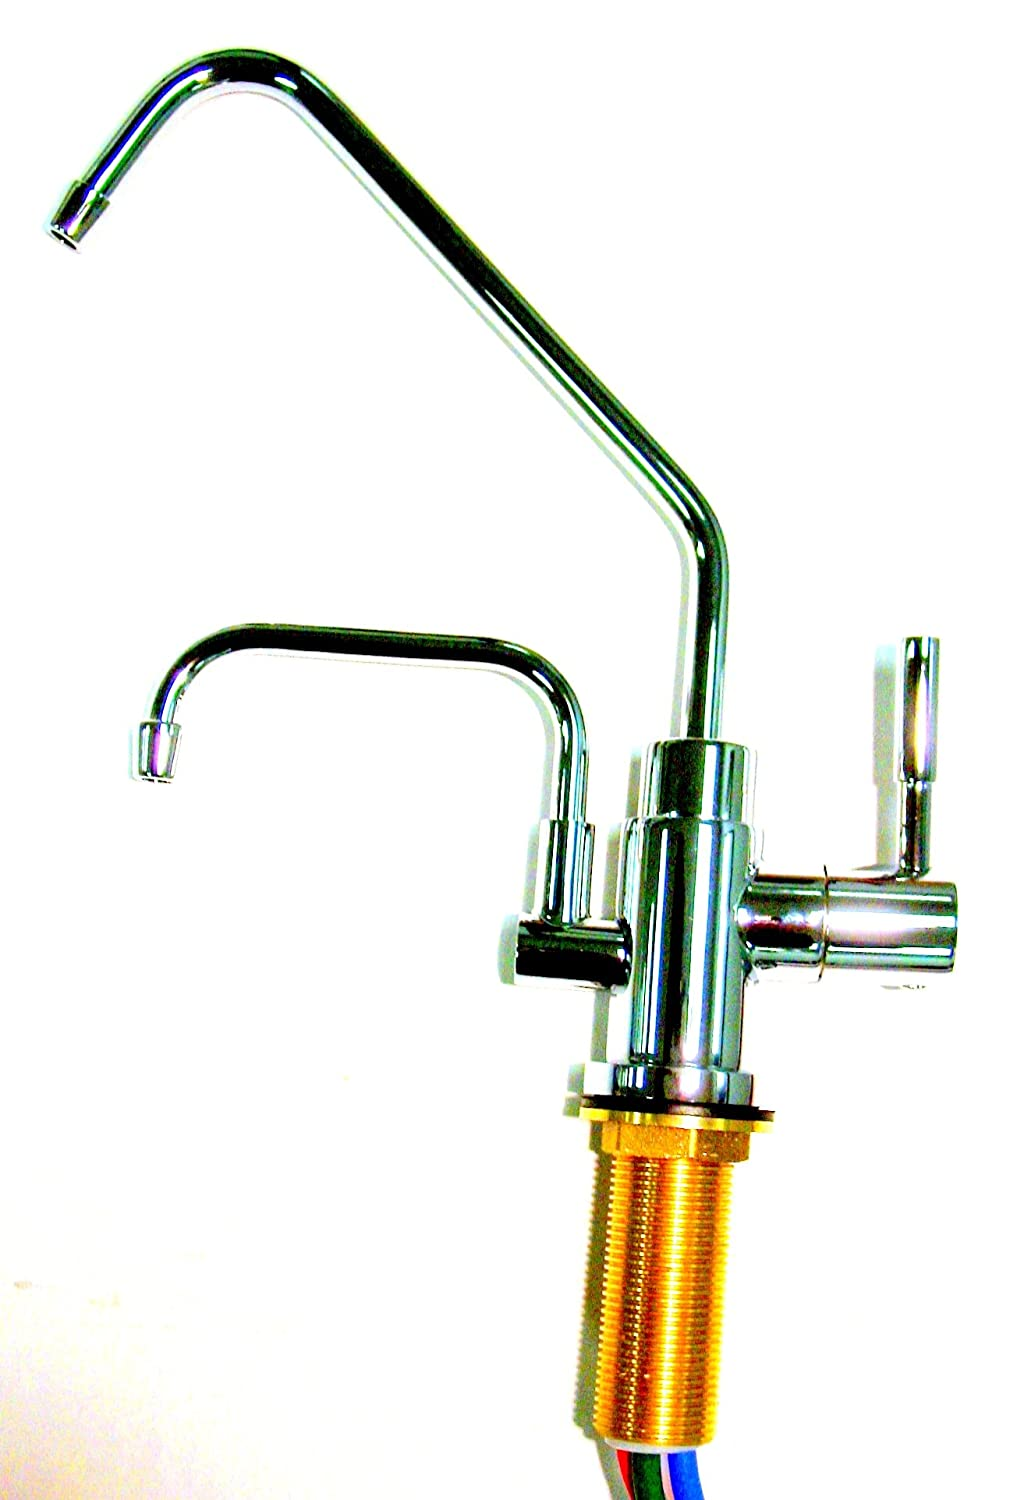 Jupiter Ionizer Undersink Installation Kit - 2 Headed - Chrome Faucet